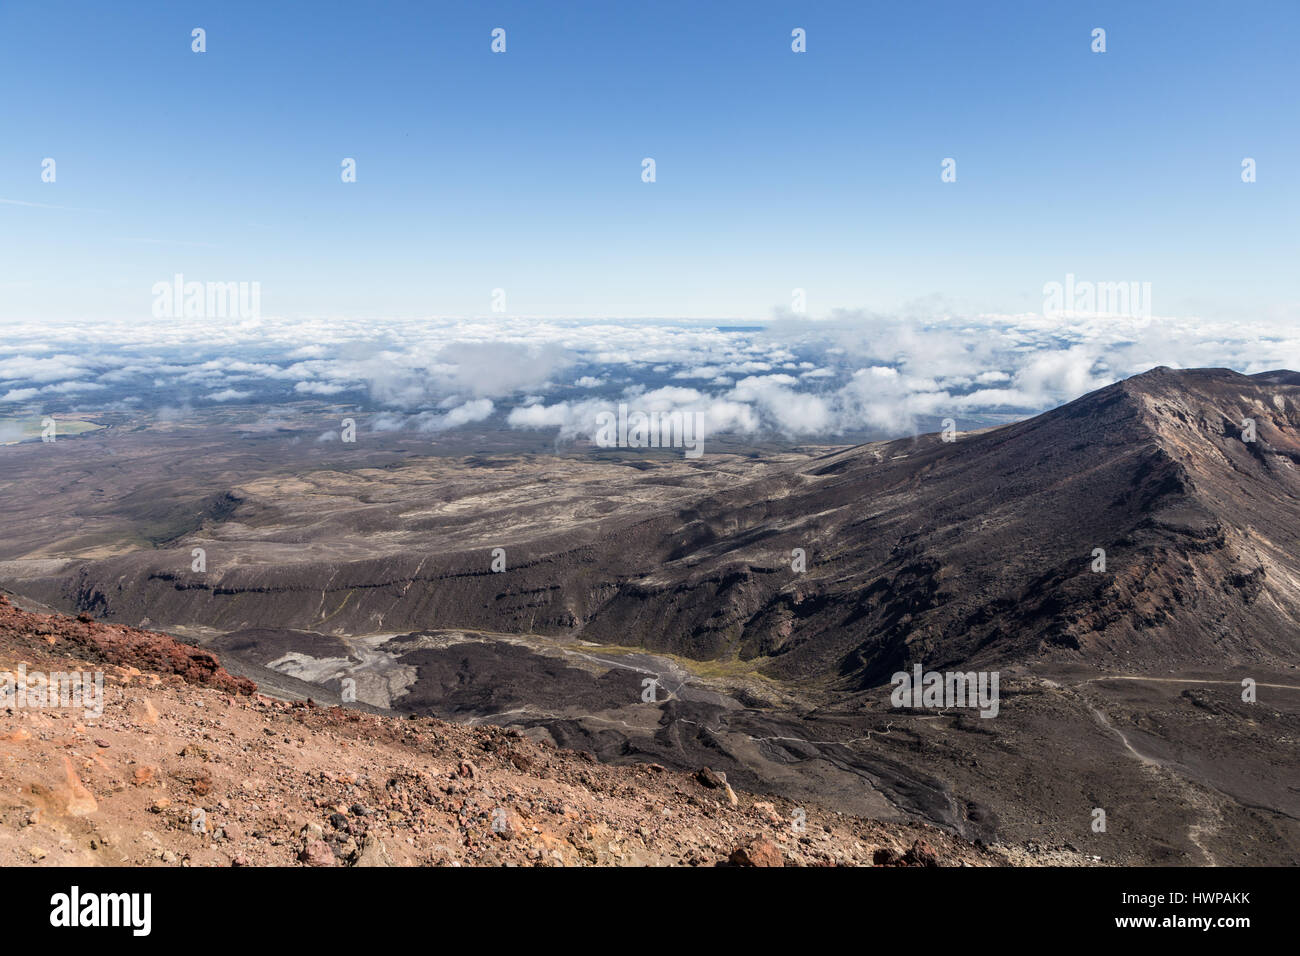 The famous Tongariro Alpine crossing hiking rail viewed from the slope of the Ngauruhoe volcano in New Zealand north - Stock Image